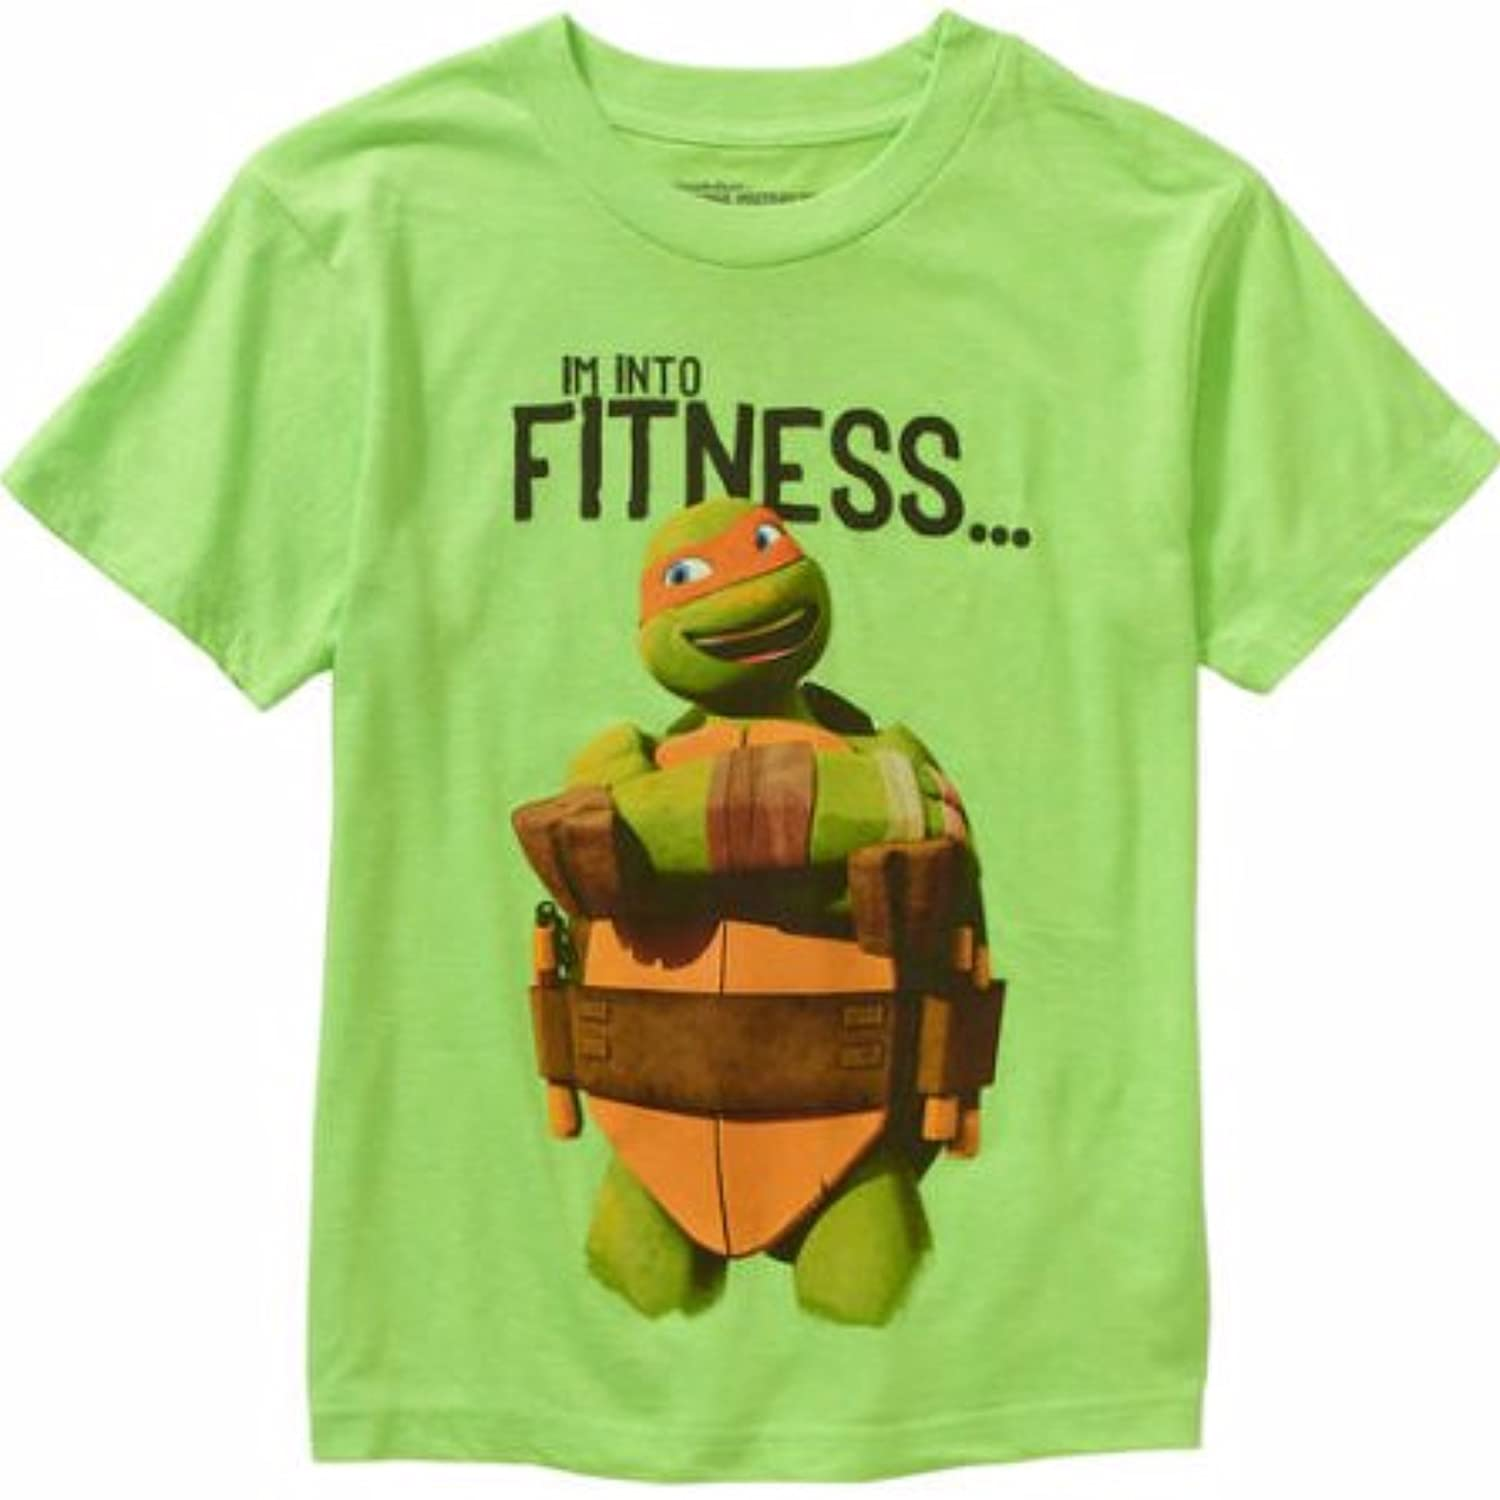 new Teenage Mutant Ninja Turtles Into Fitness Boys Graphic Tee Size 18 big discount